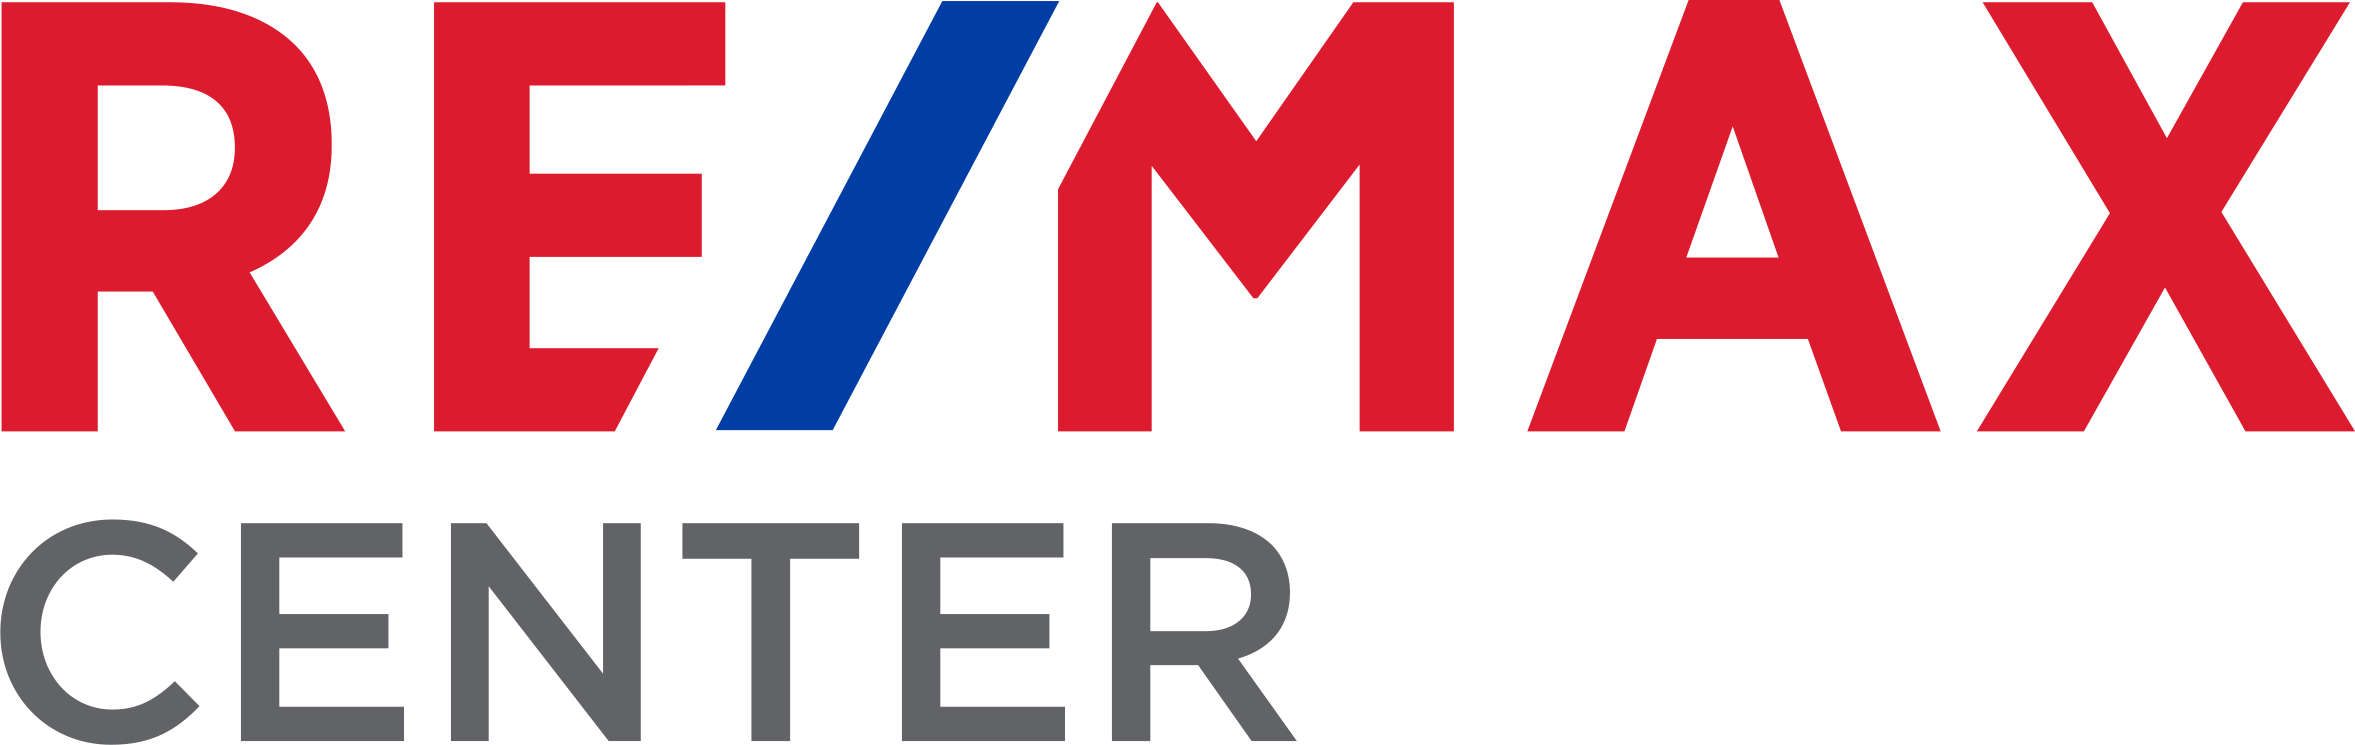 RE/MAX Center logo